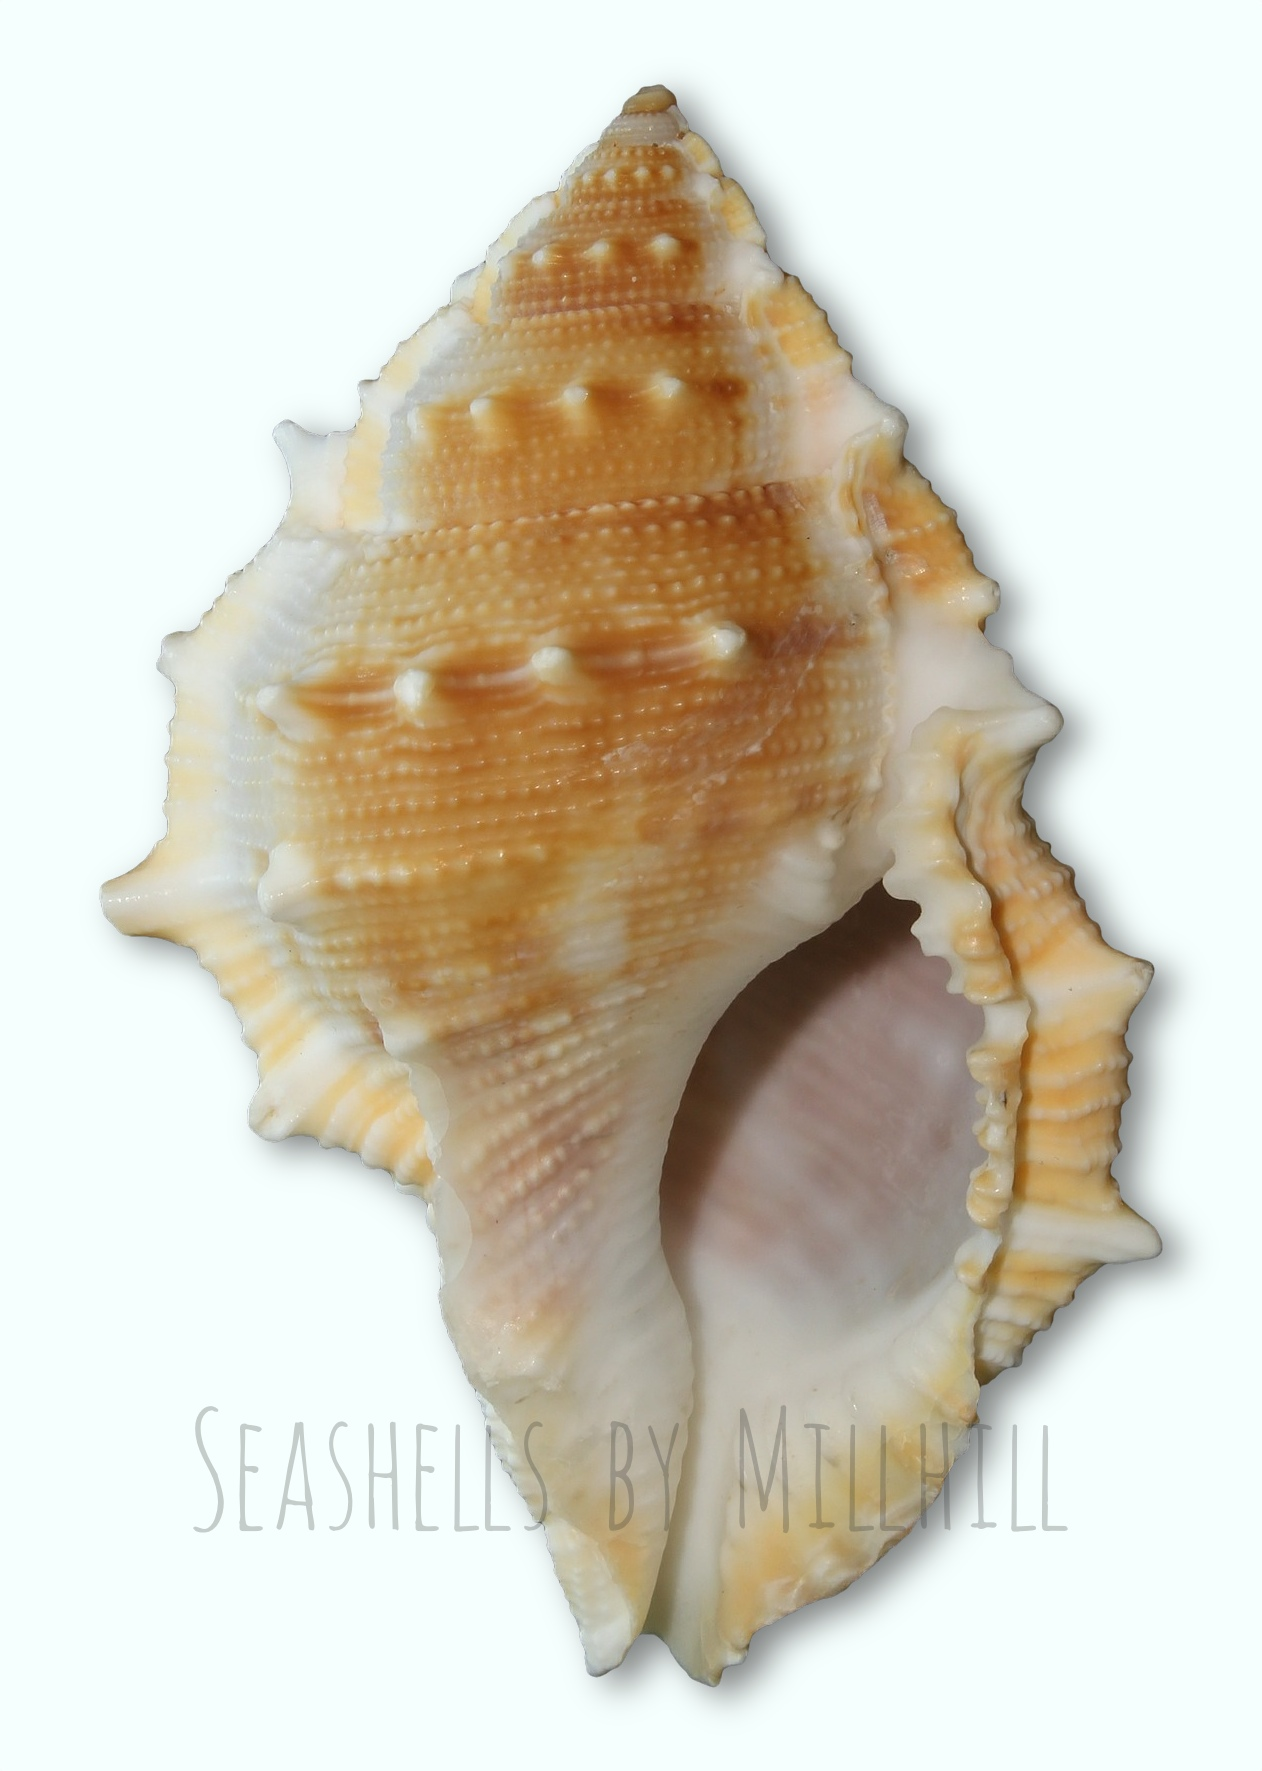 A Pretty Little Seashell – Seashells by Millhill